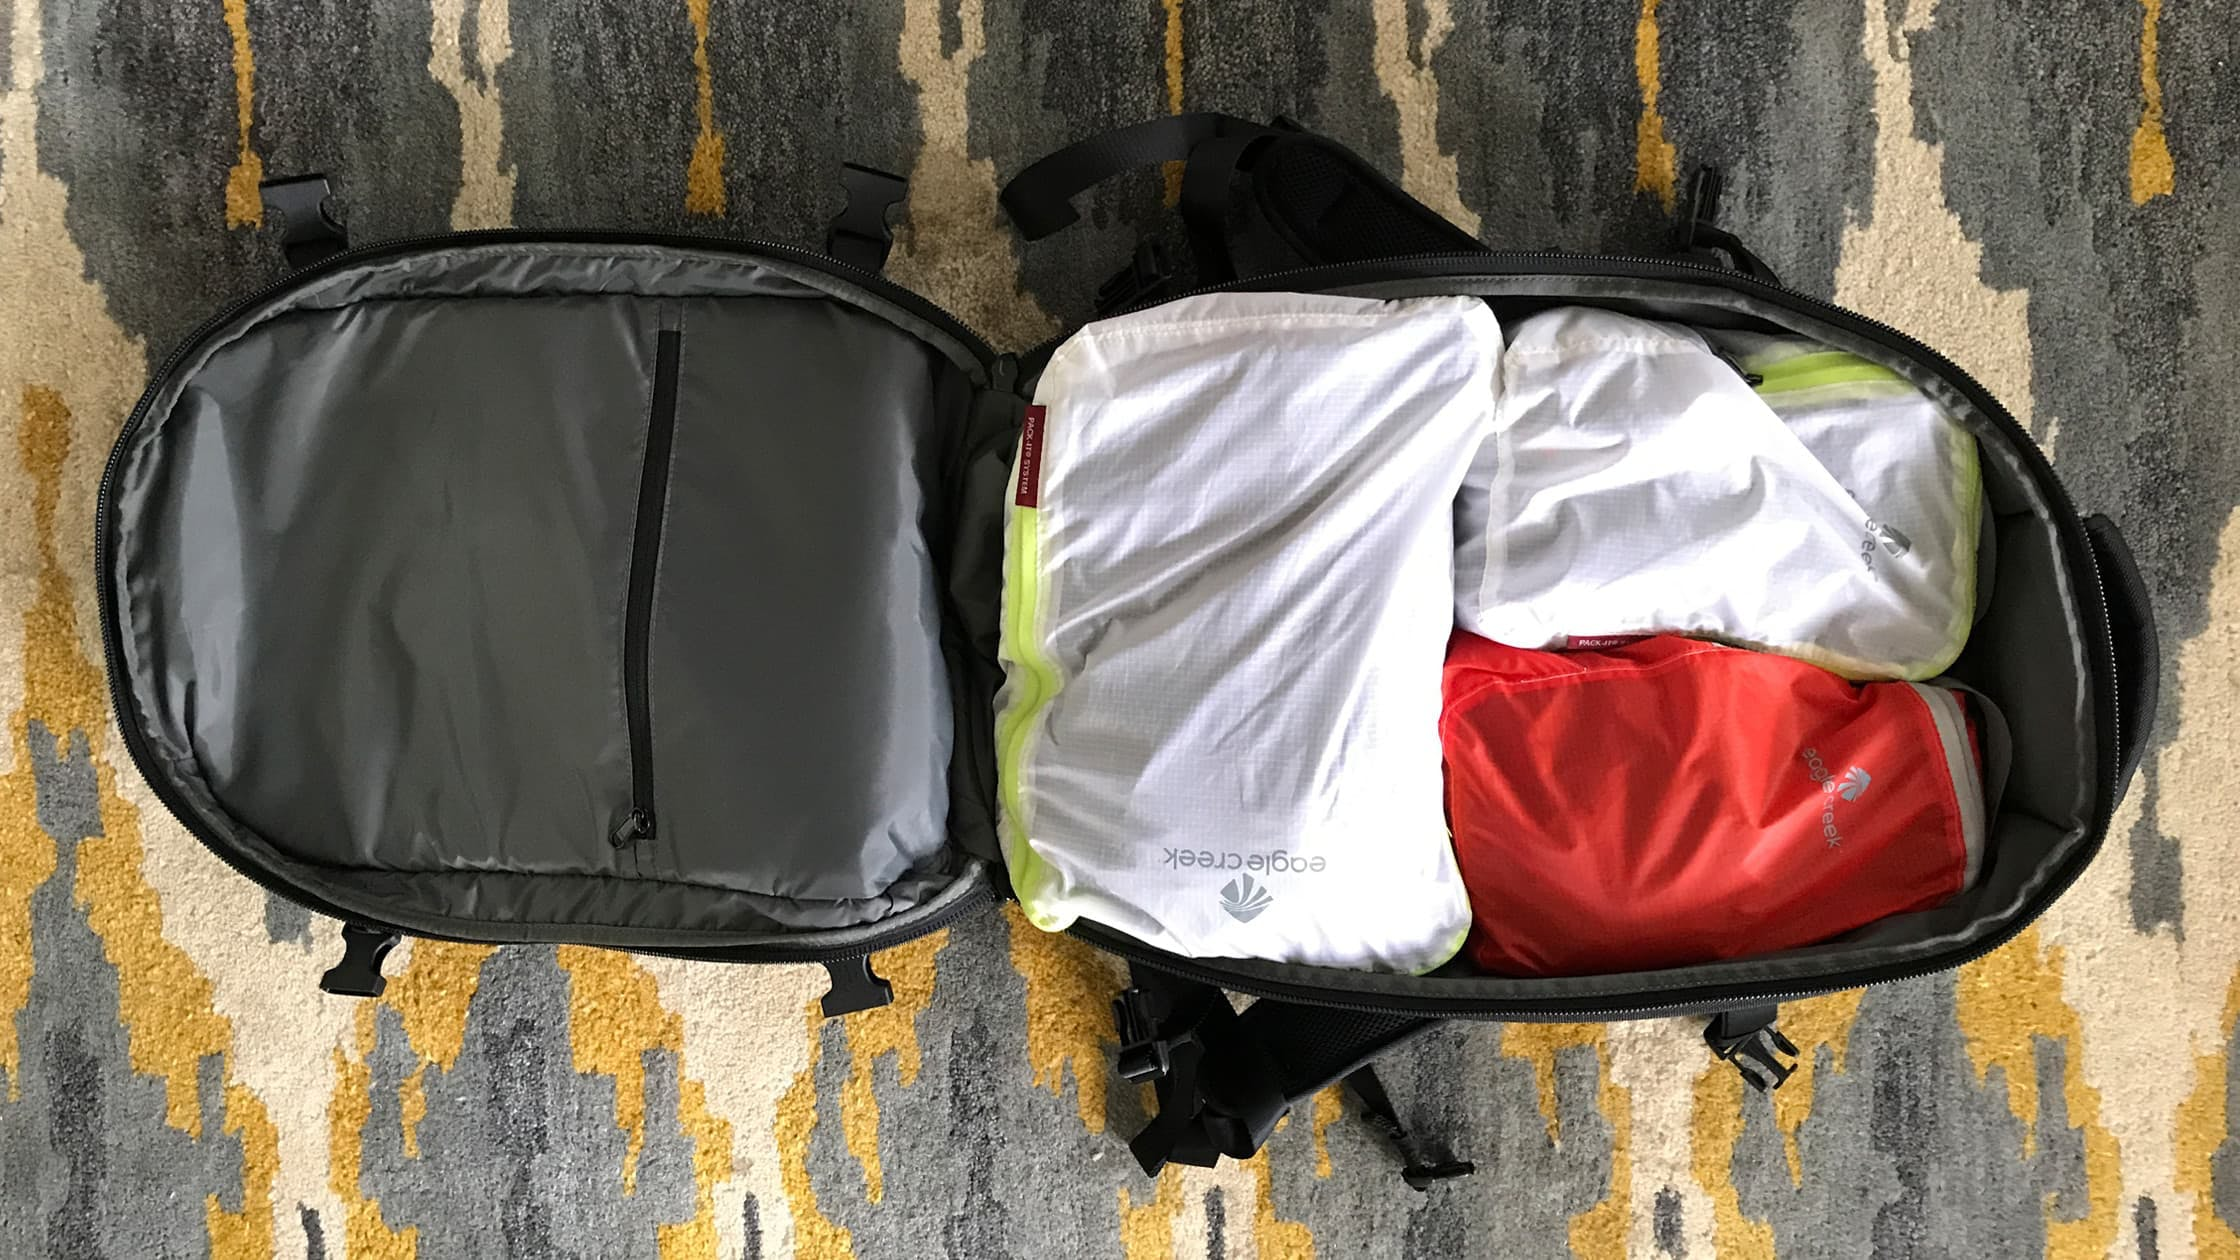 Aer Travel Pack Clamshell